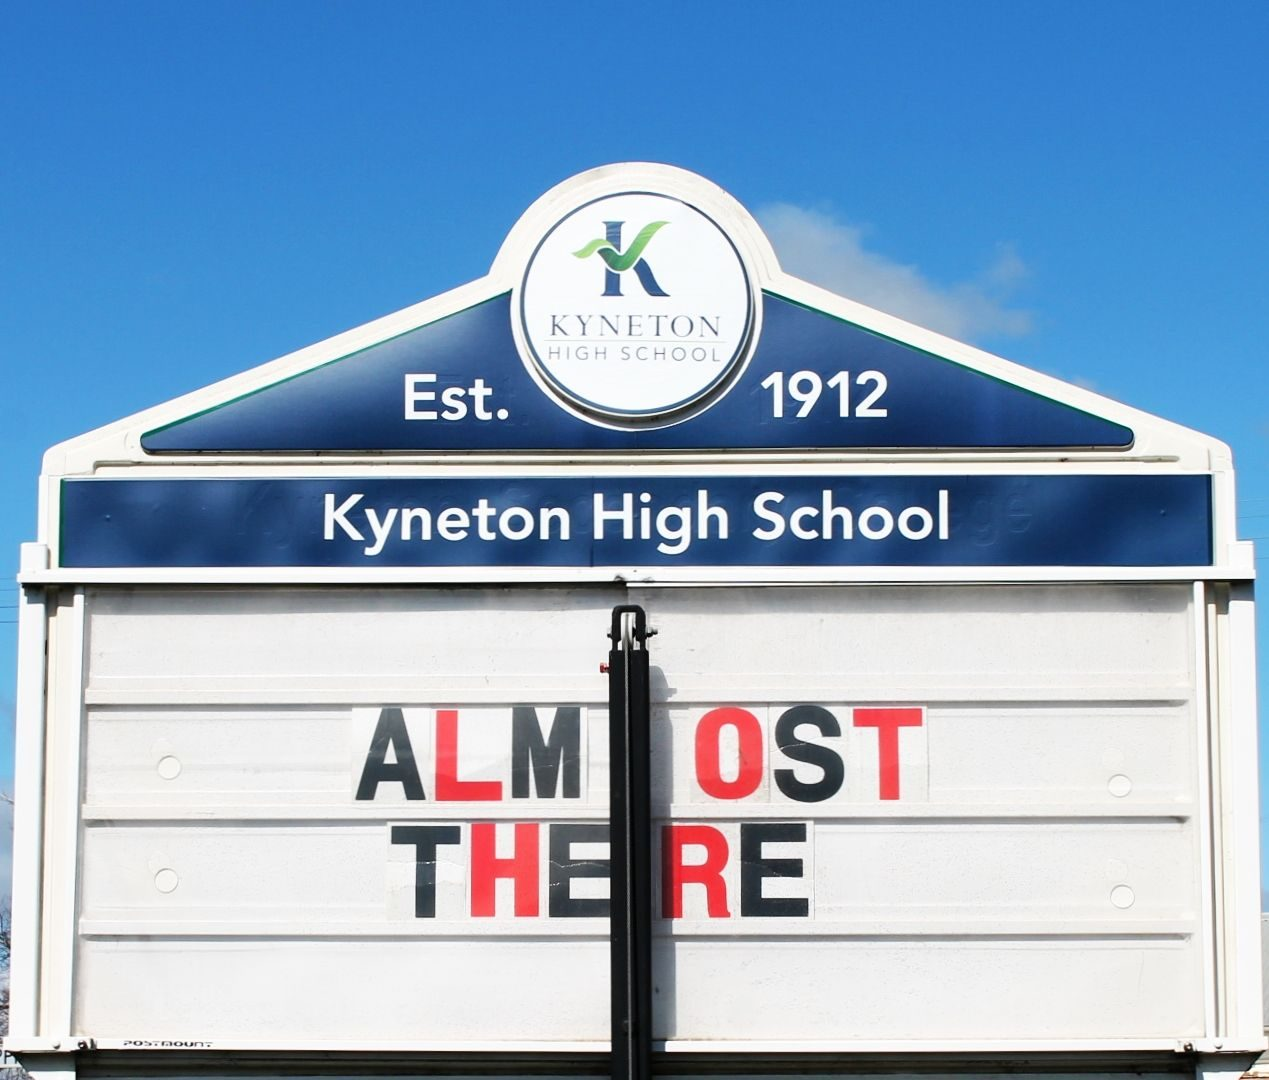 Almost there e1631599700391 - Kyneton High School - Excellence in Teaching & Learning